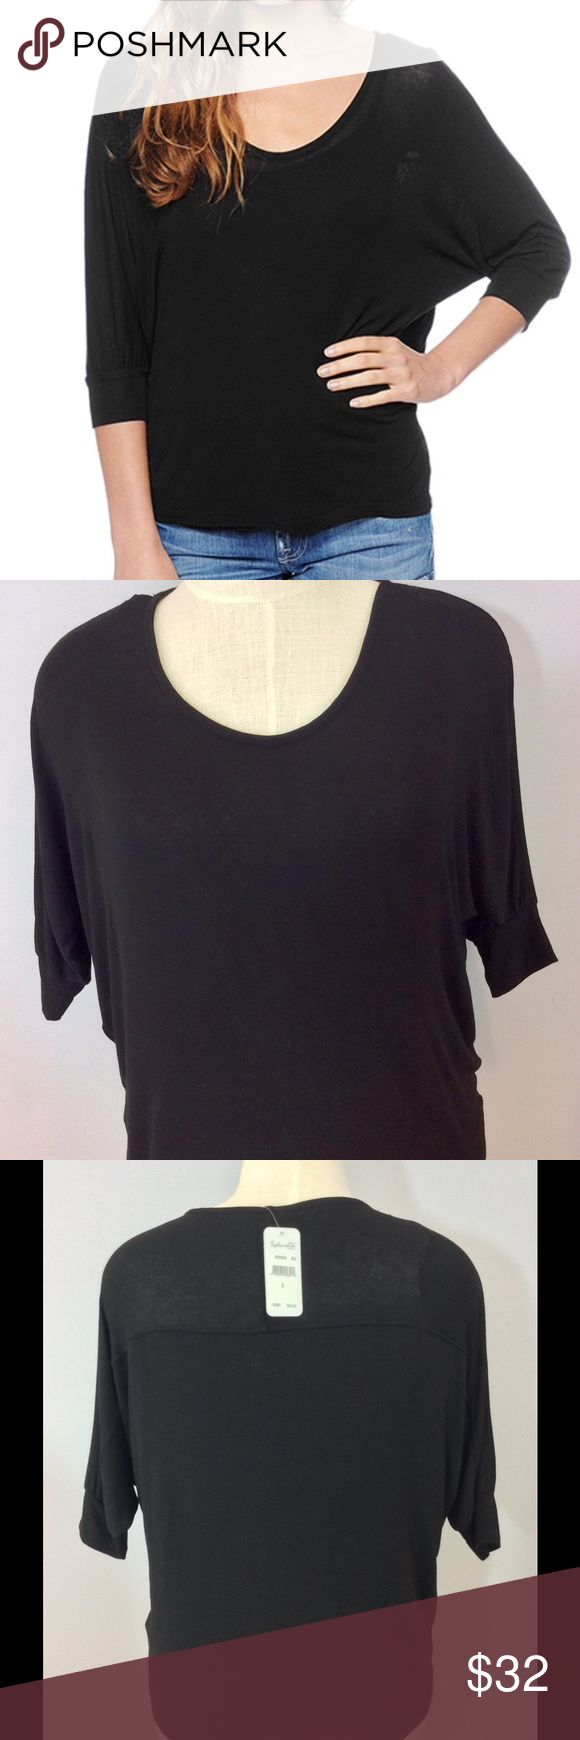 "Splendid Black Oversized Dolman Sleeve Top. Size S NWT. Splendid Black Oversized Dolman Sleeve Top. Size S. A boxy, oversized cut gives a Splendid top an effortless drape. An uneven hem and short dolman sleeves keep the look relaxed and loose. Semi-sheer. Measures approx. 25 long on side. 27"" flat under arms. Cover is a stock photo. All other pictures are of actual item. Splendid Tops"